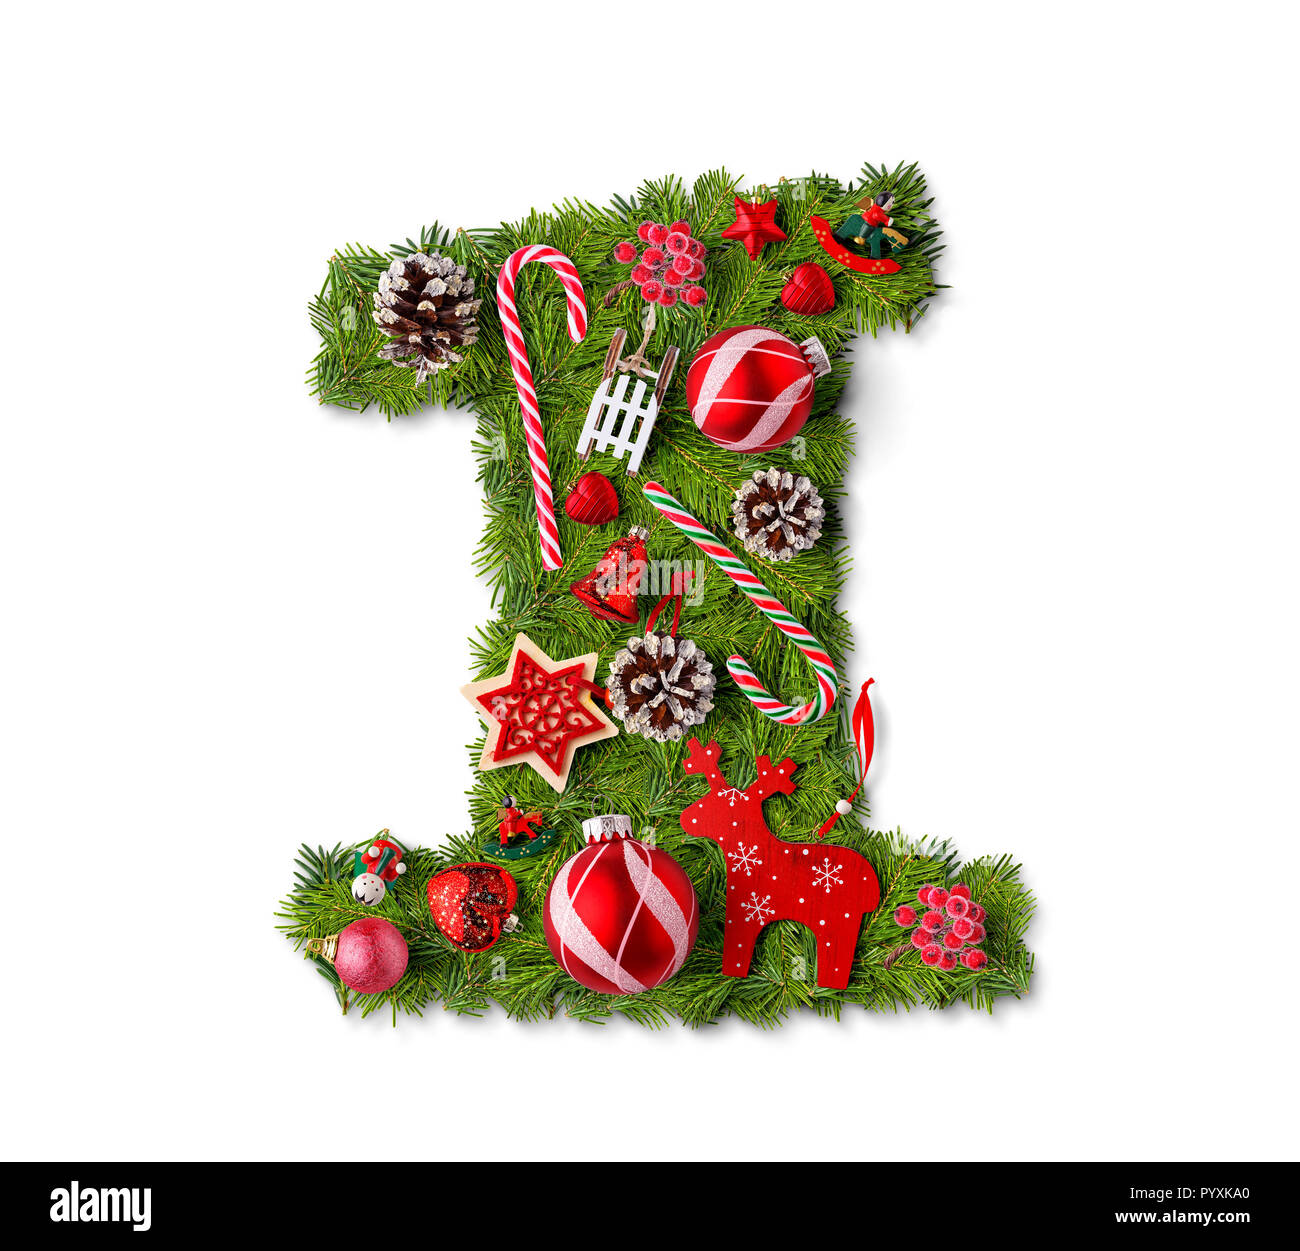 Number 1 Christmas Tree Decoration On A White Background Stock